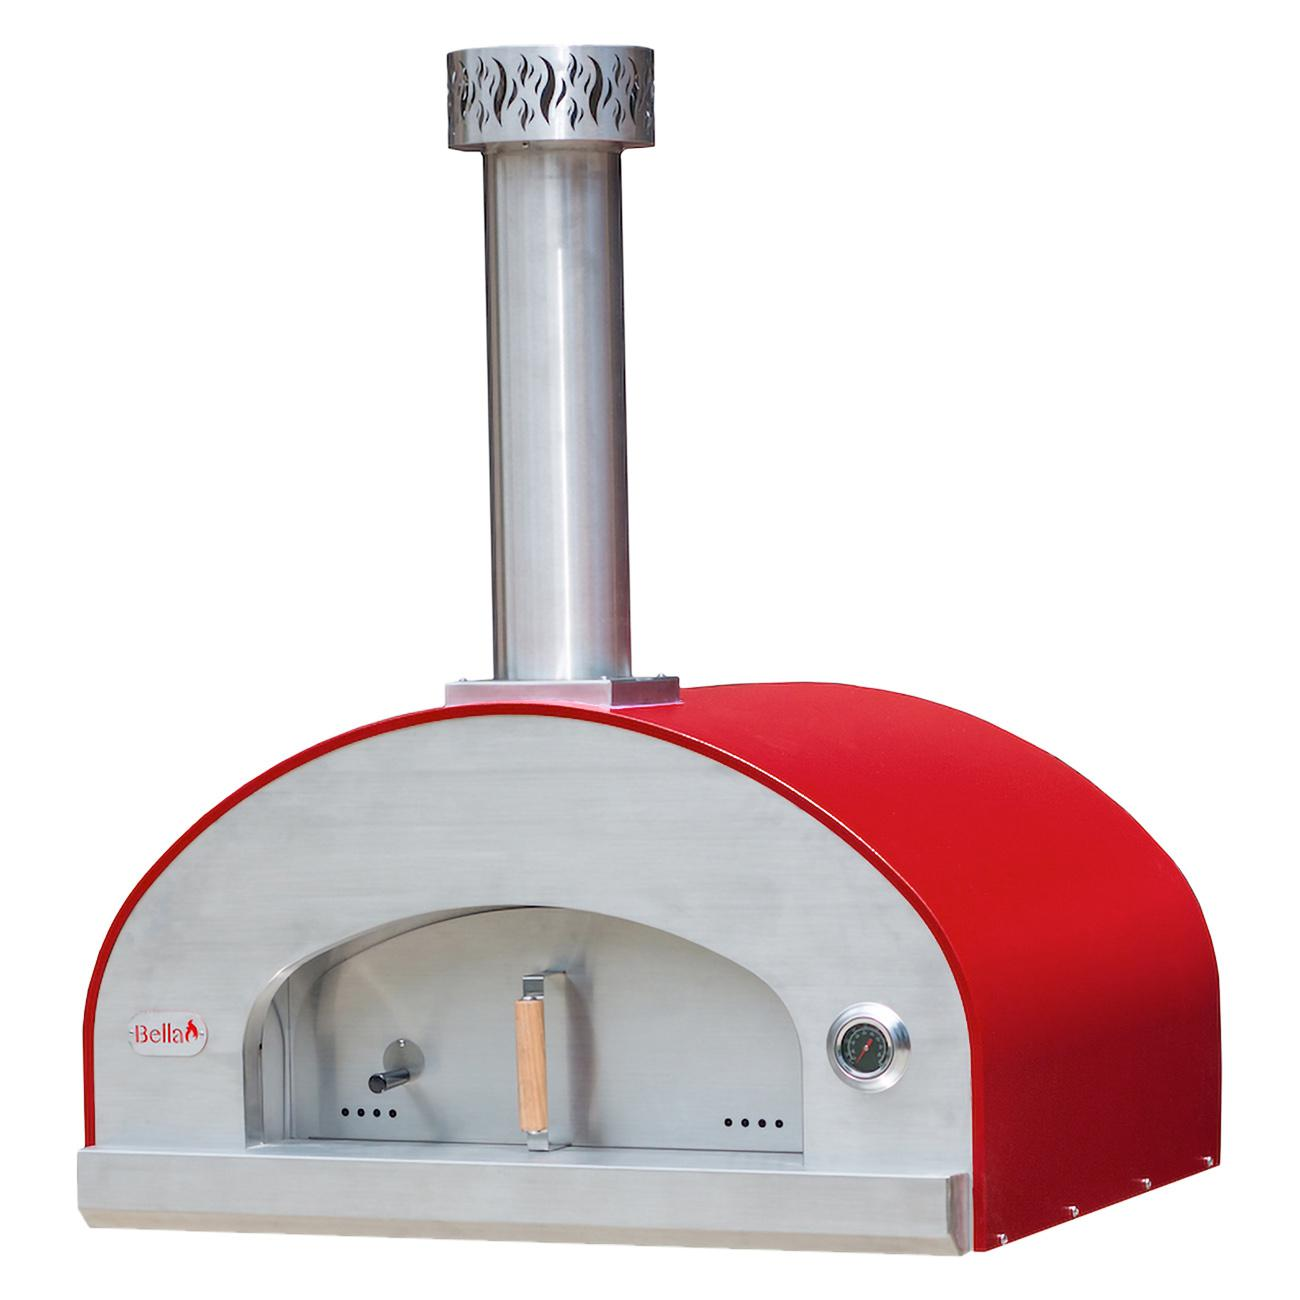 "Bella Outdoor Living Bella Grande 36"" Outdoor Wood Fired Pizza Oven - Red - Begd36r"